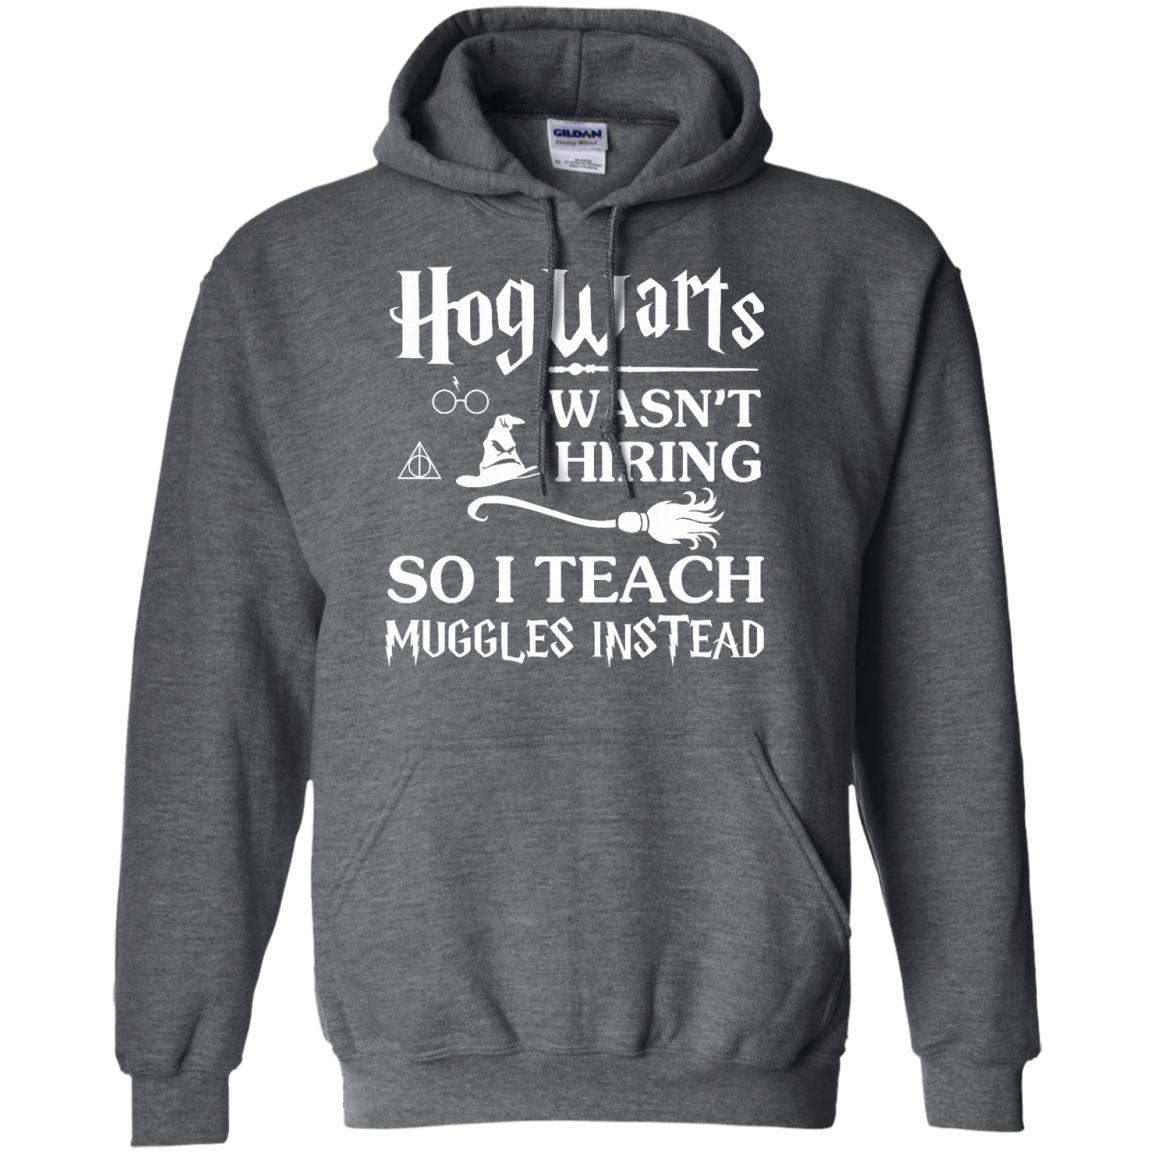 image 277px Hogwarts Wasn't Hiring So I Teach Muggles Instead T Shirts, Hoodies, Tank Top